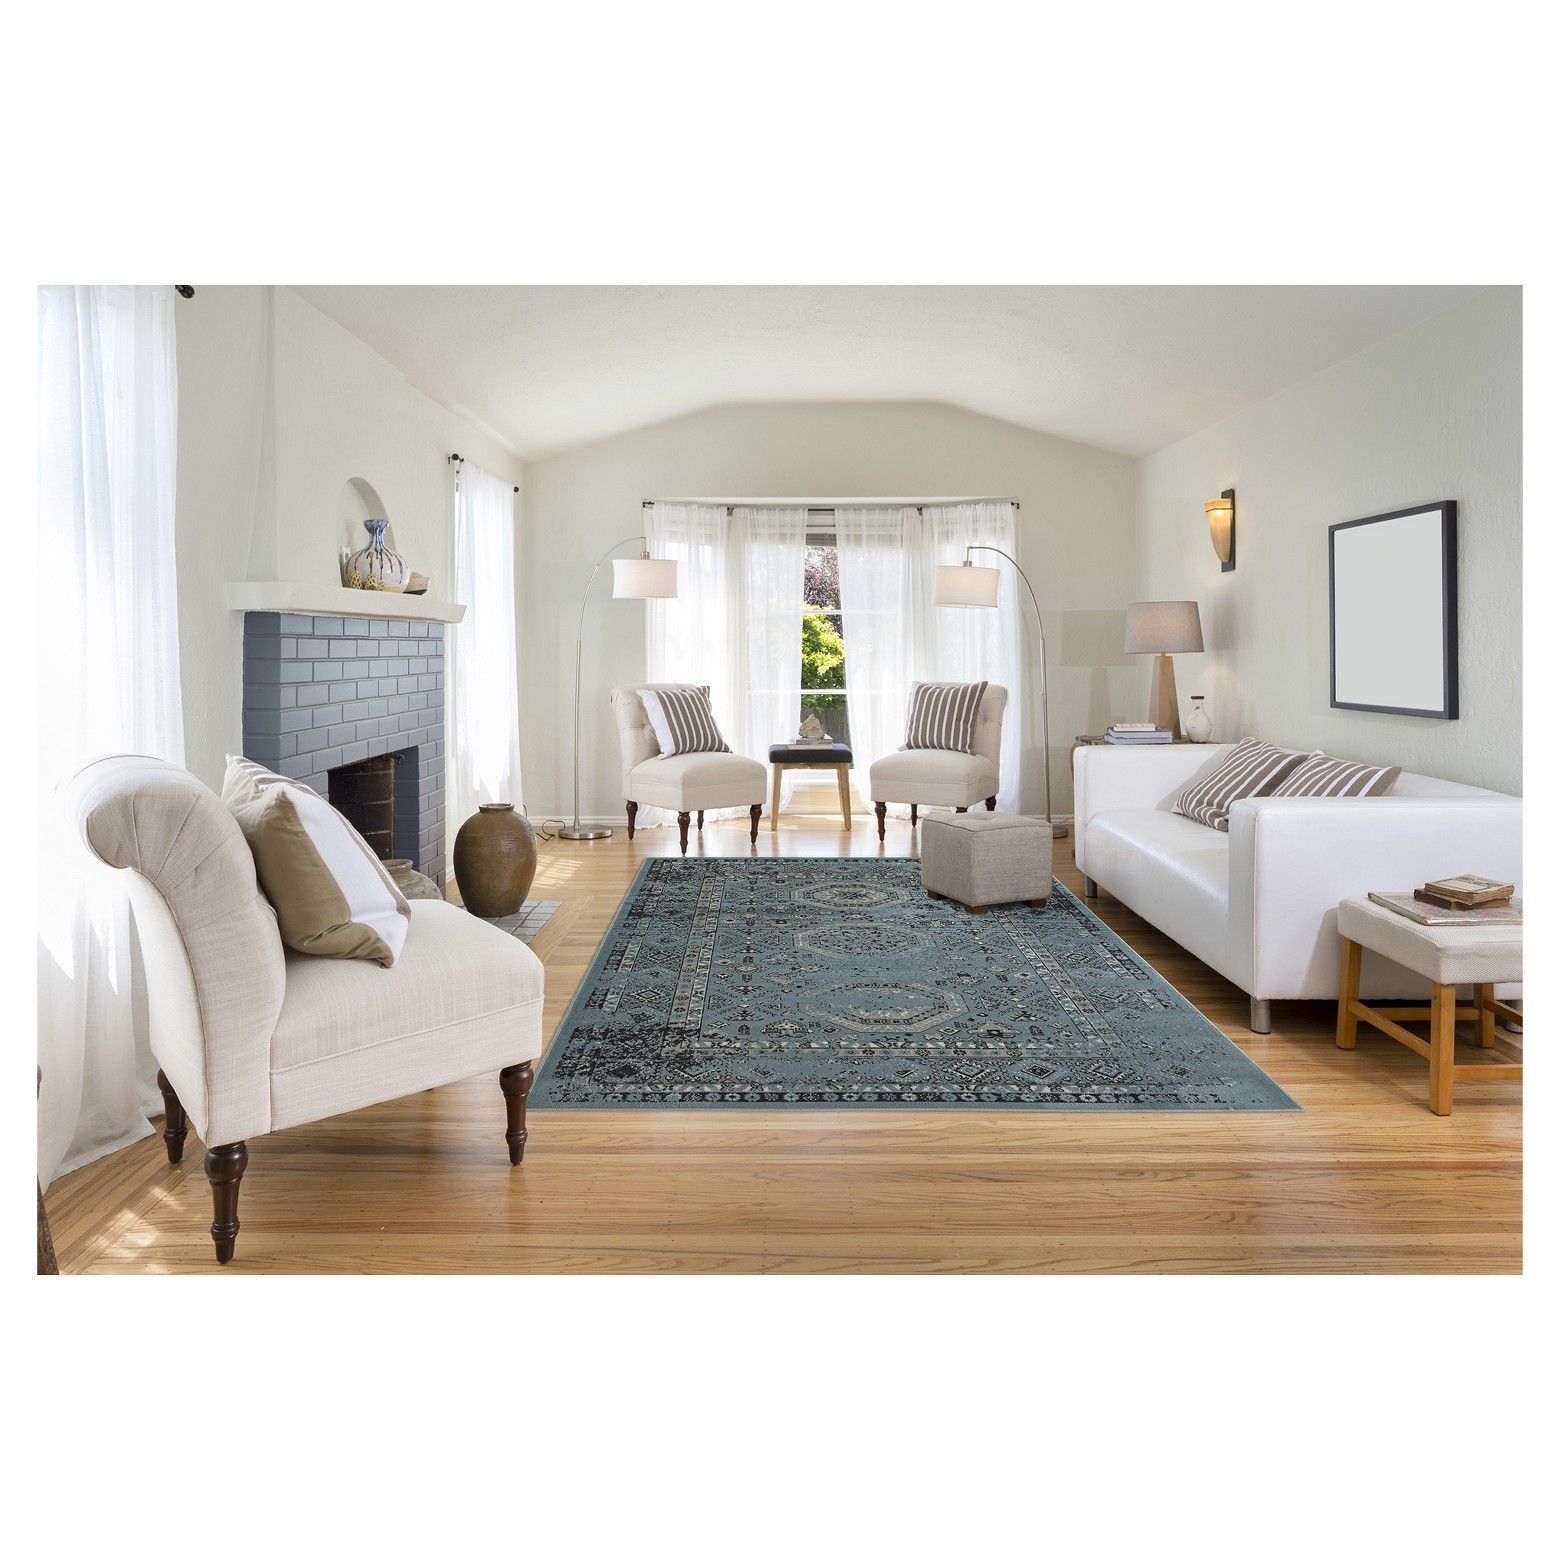 Add vintage appeal to your home with the ryan overdyed rug from